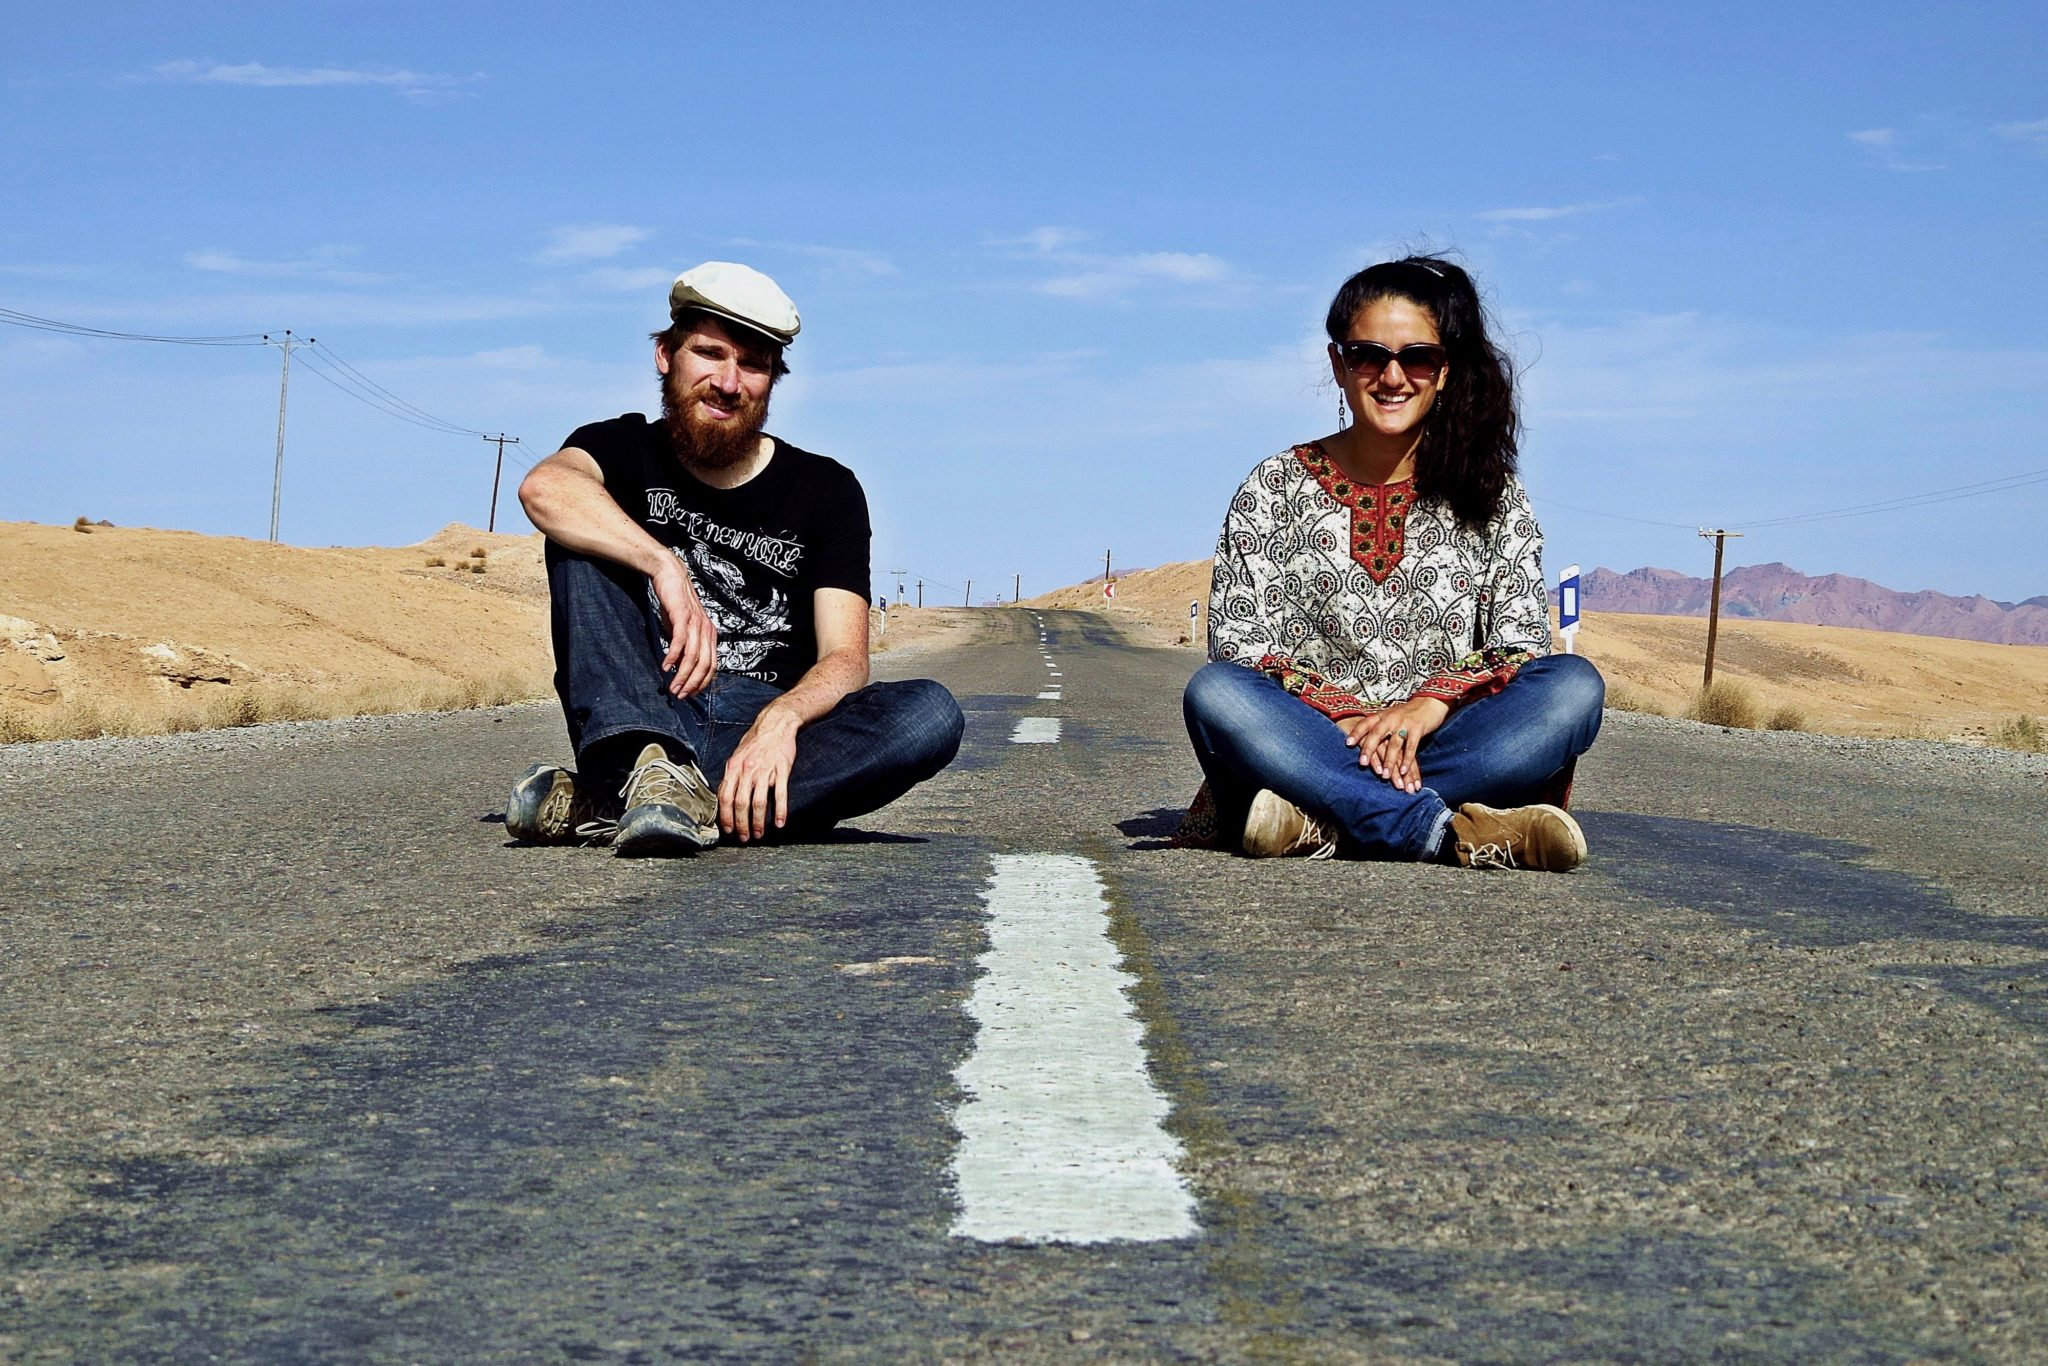 Hitchhiking to India: The German authors Morten Hübbe and Rochssare Neromand-Soma went all the way from Germany to India hitchhiking.